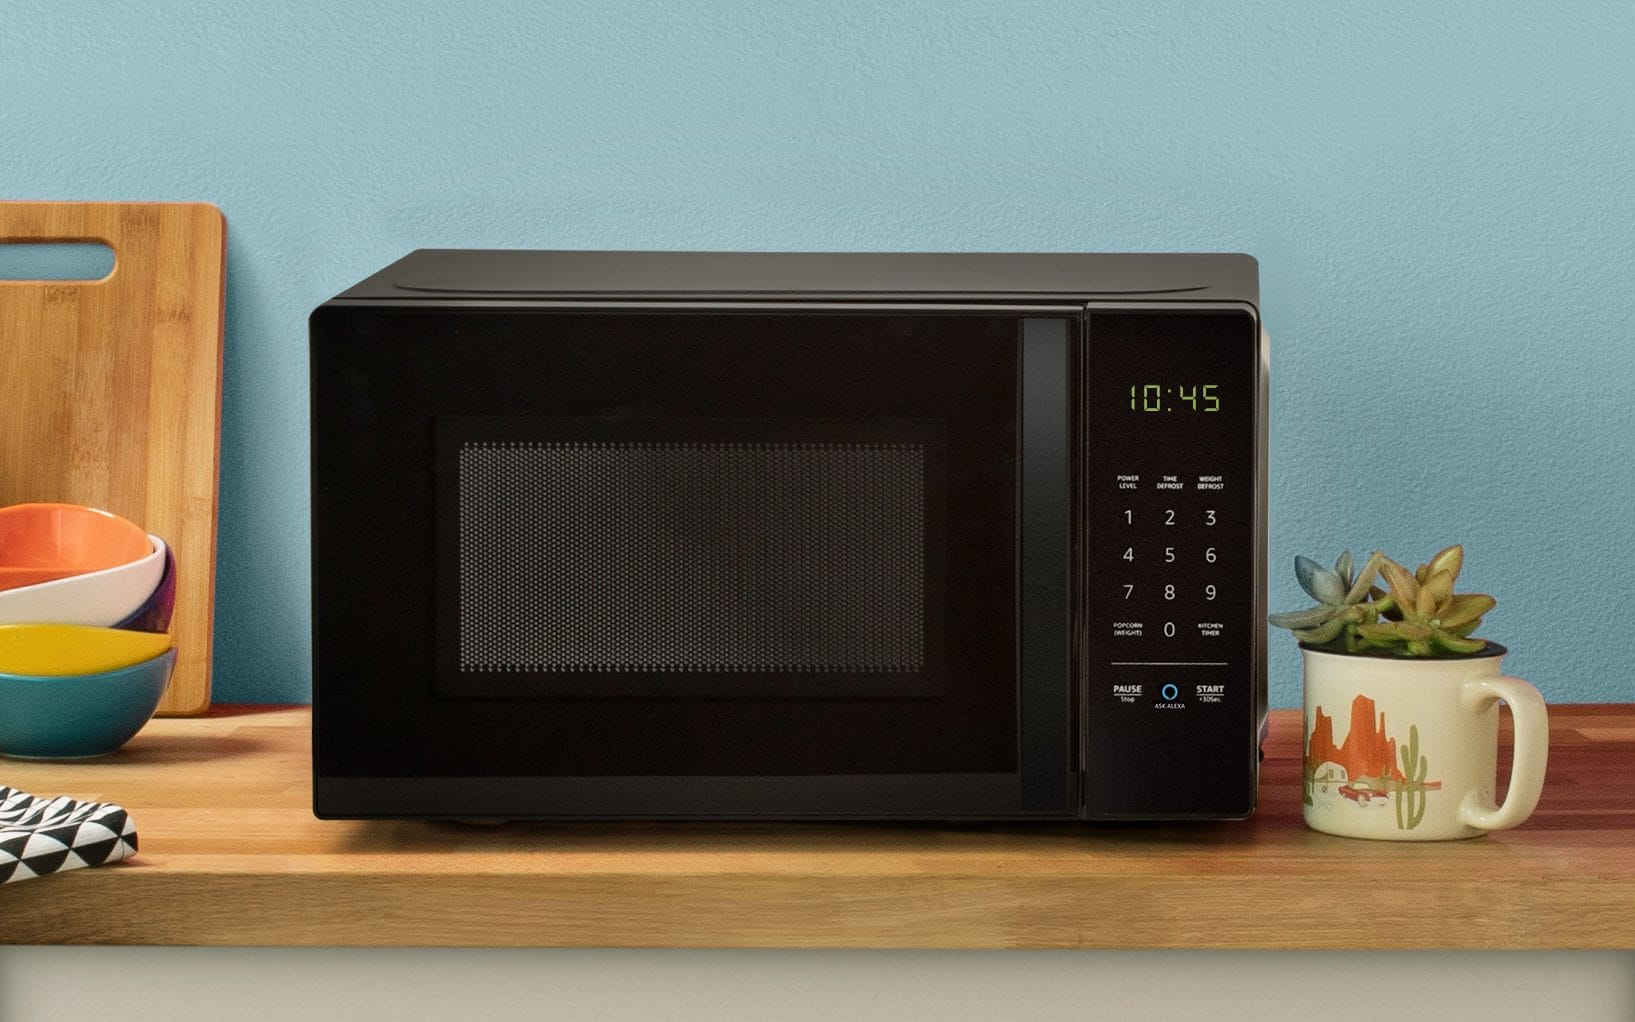 AmazonBasics microwave is controlled using voice